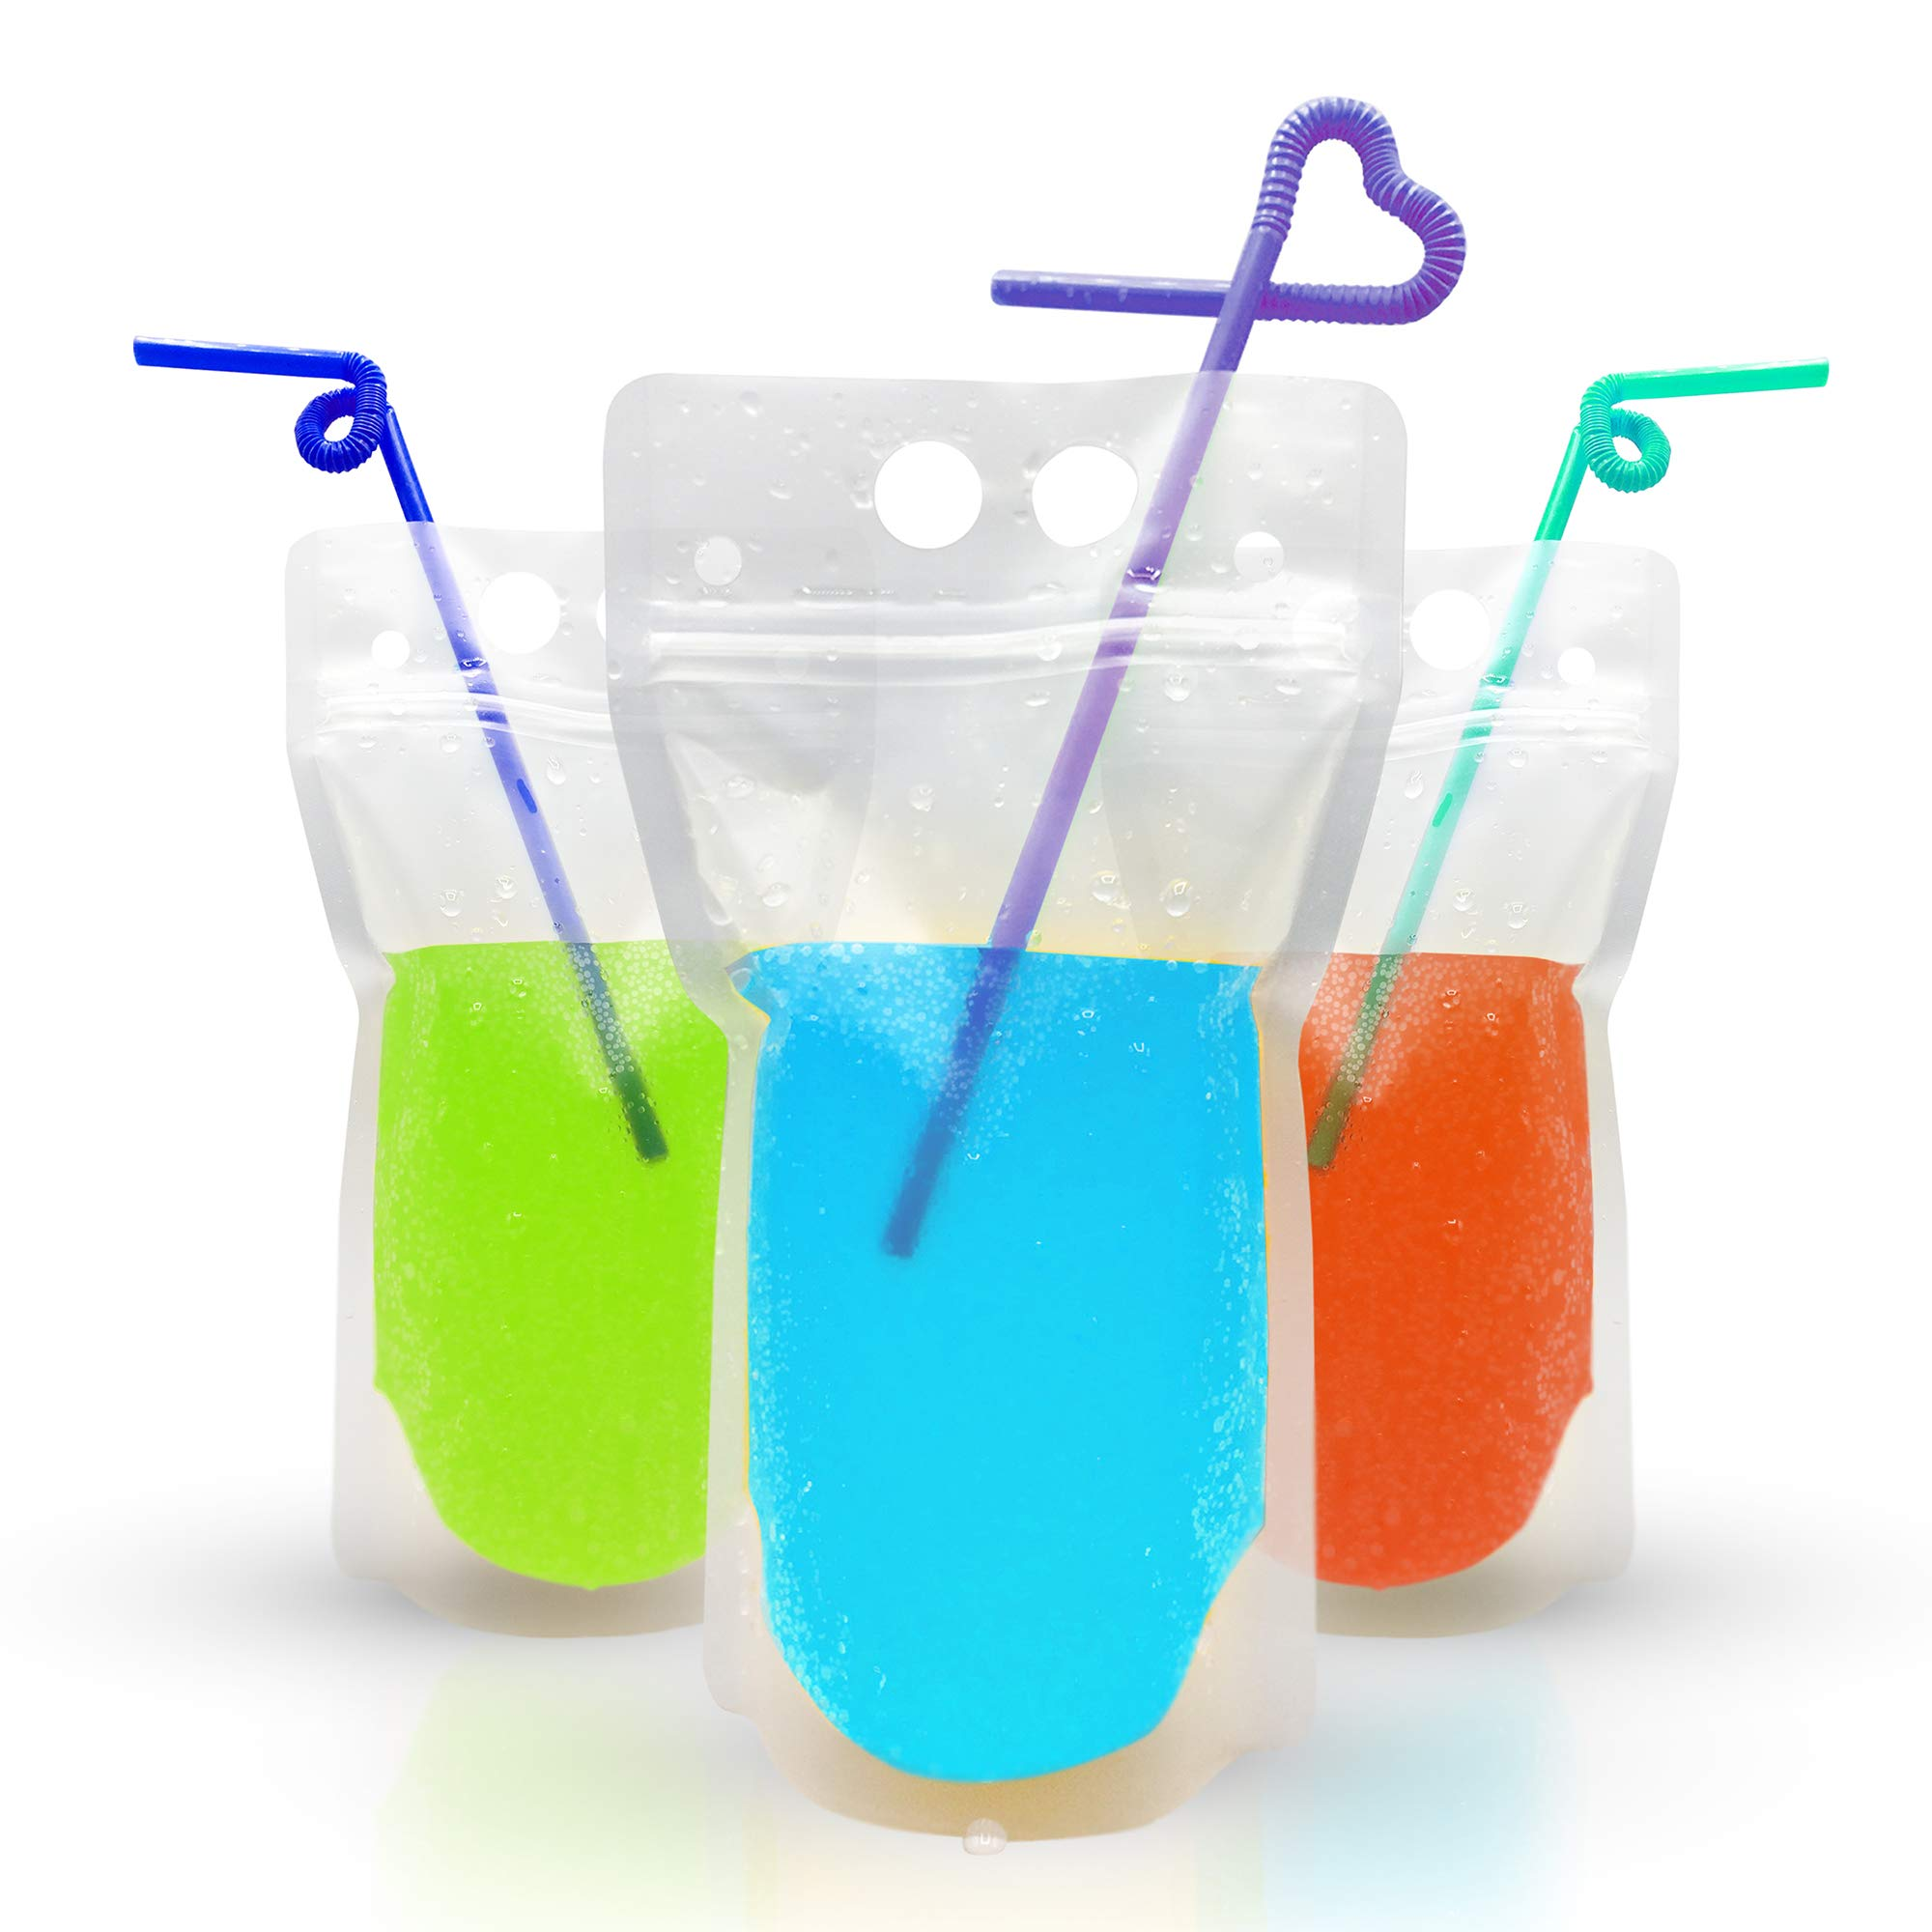 100 PCS Drink Pouches with Straw - Reusable Juice Pouches with Plastic Zipper, Smoothie Bags with 100 PCS Straws